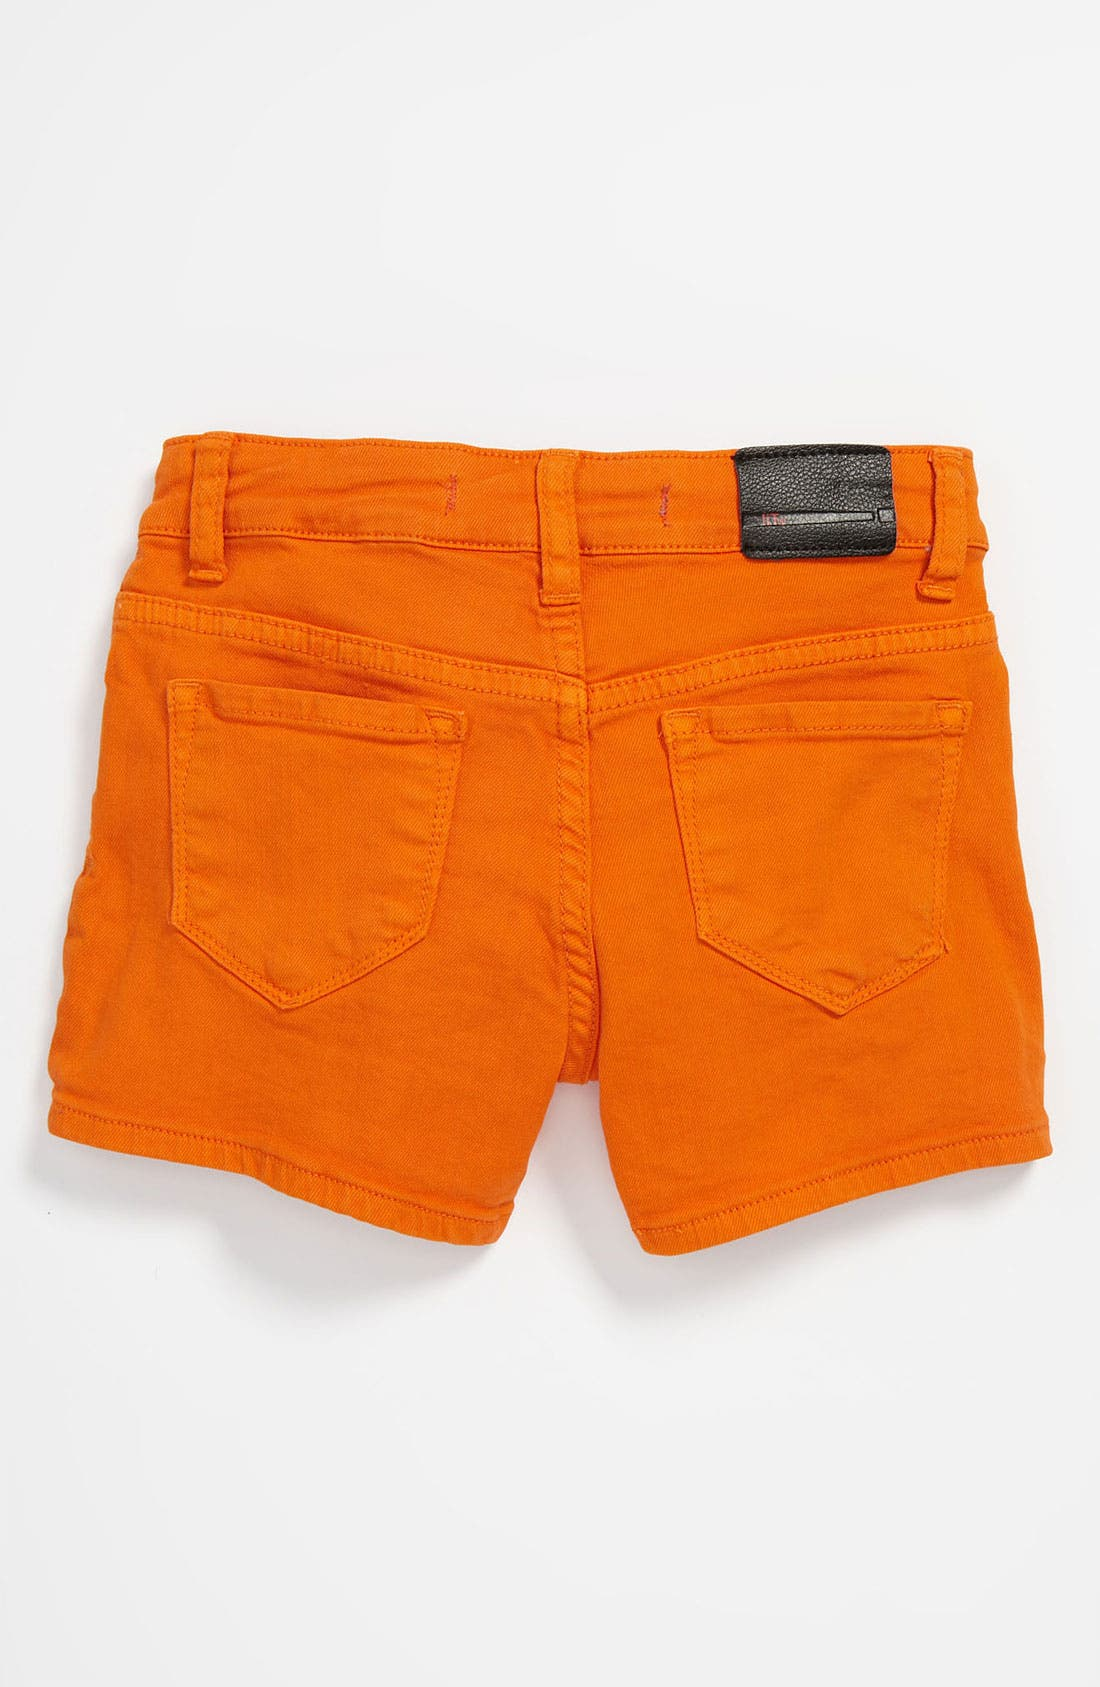 Alternate Image 1 Selected - !iT JEANS Five Pocket Shorts (Little Girls)